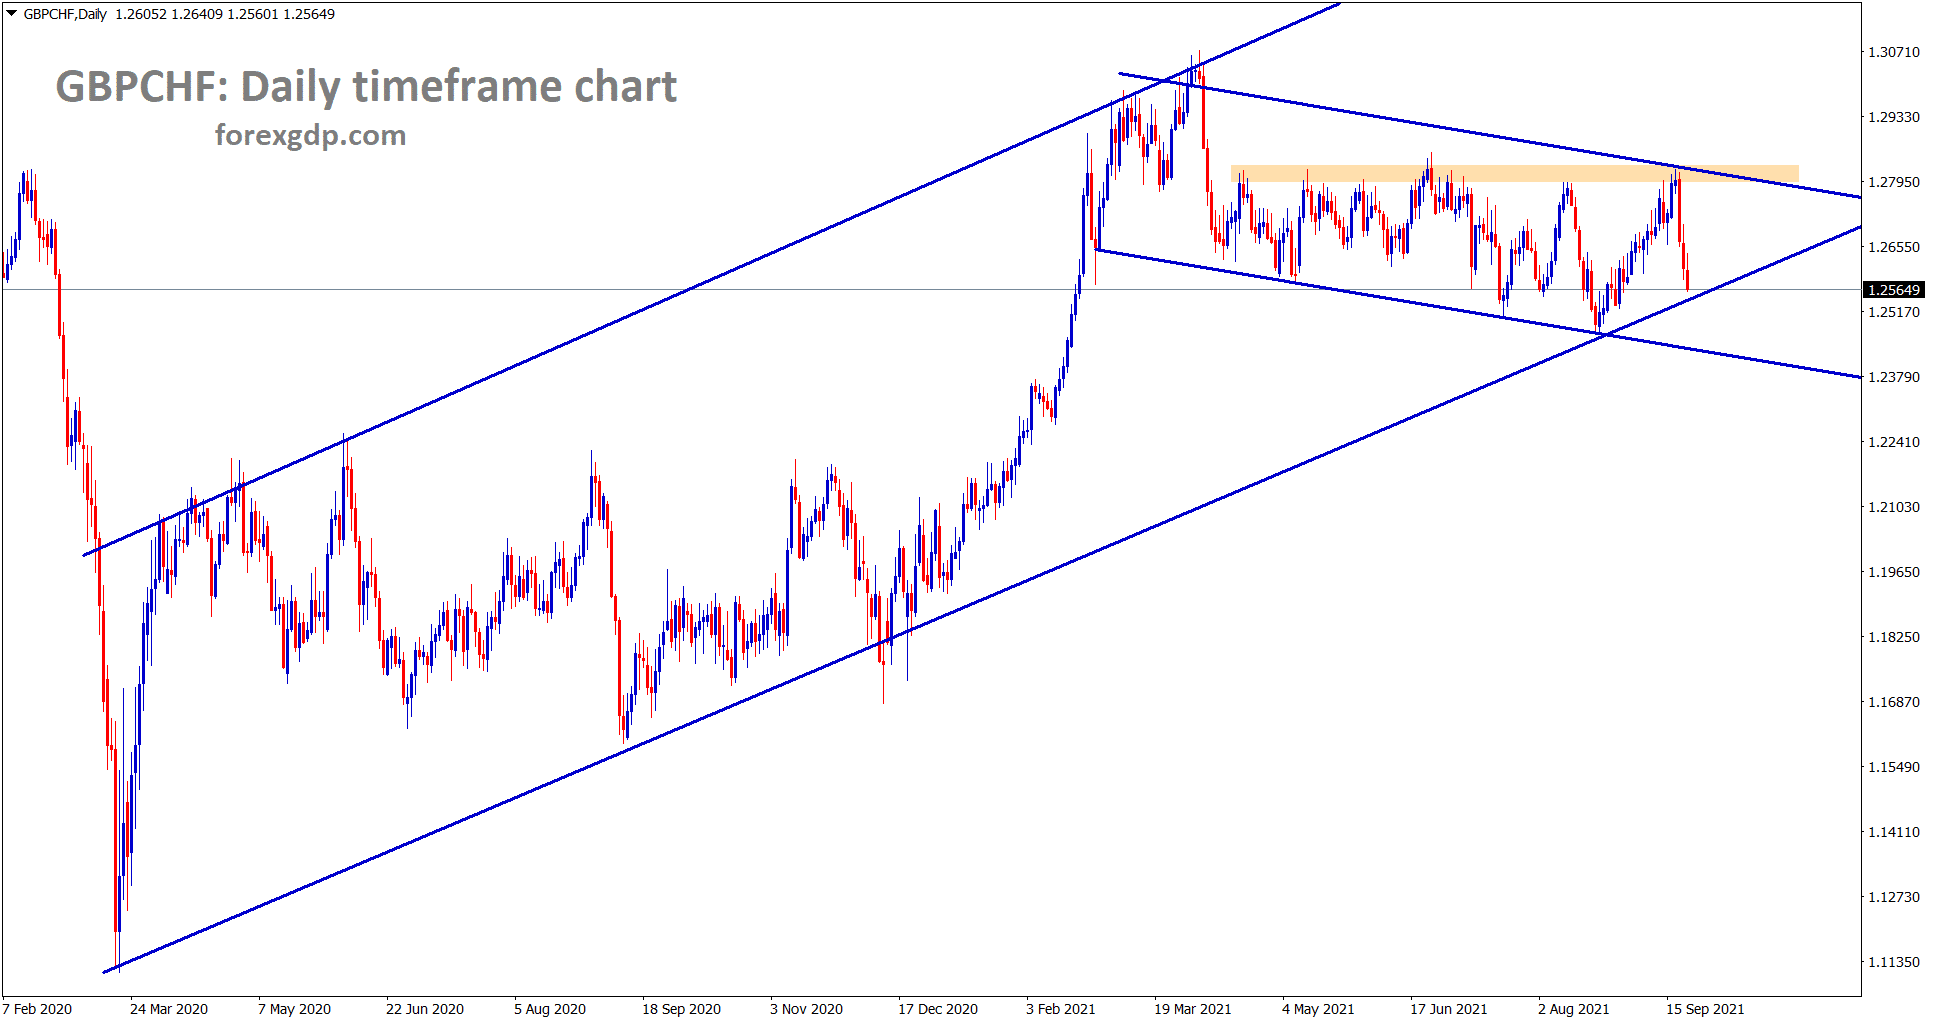 GBPCHF has fallen again to the higher low of the uptrend line